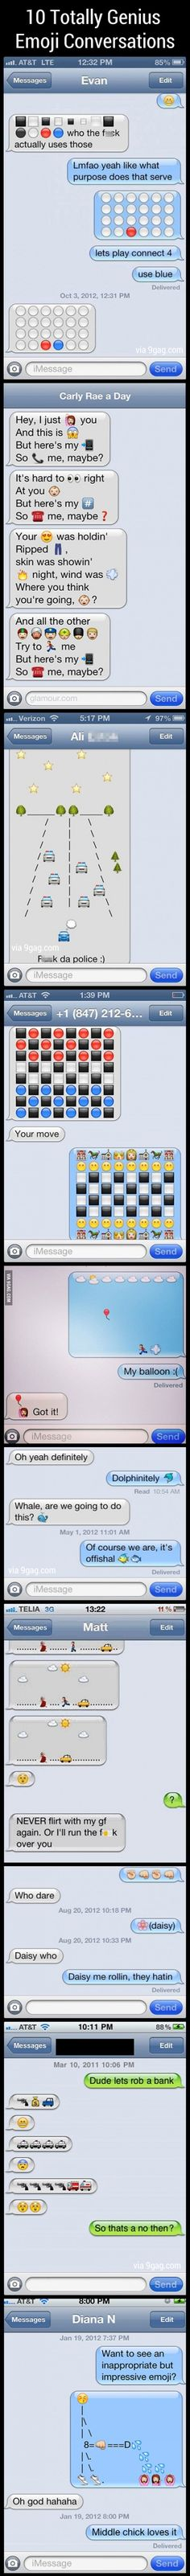 9GAG - 10 Totally Genius Emoji Conversations, man I love Emojis!!